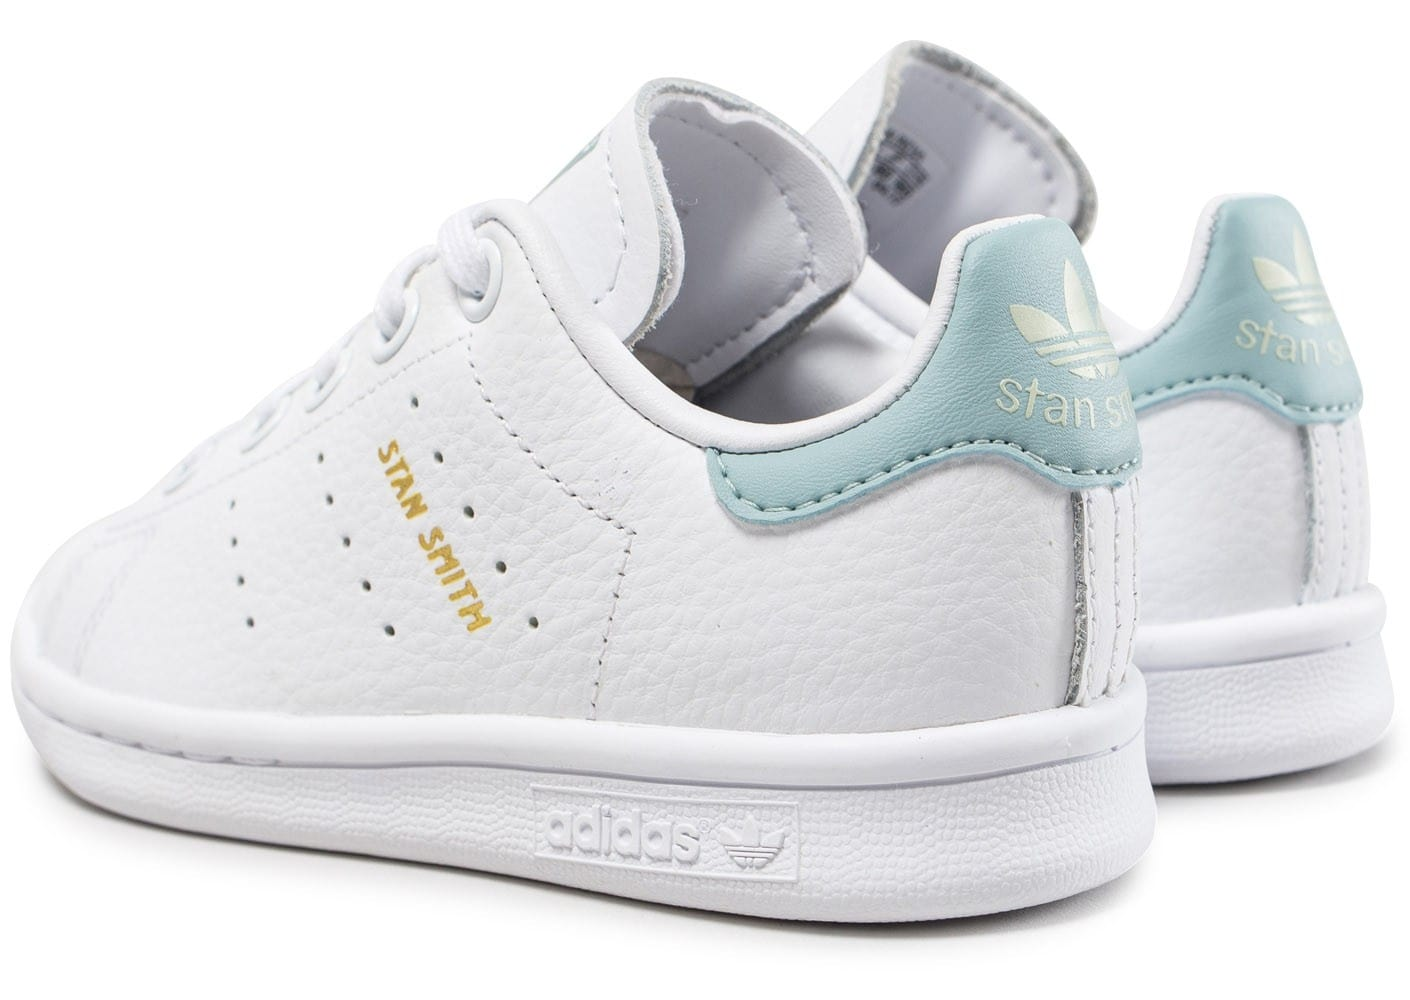 adidas stan smith enfant blanche et bleu turquoise chaussures adidas chausport. Black Bedroom Furniture Sets. Home Design Ideas